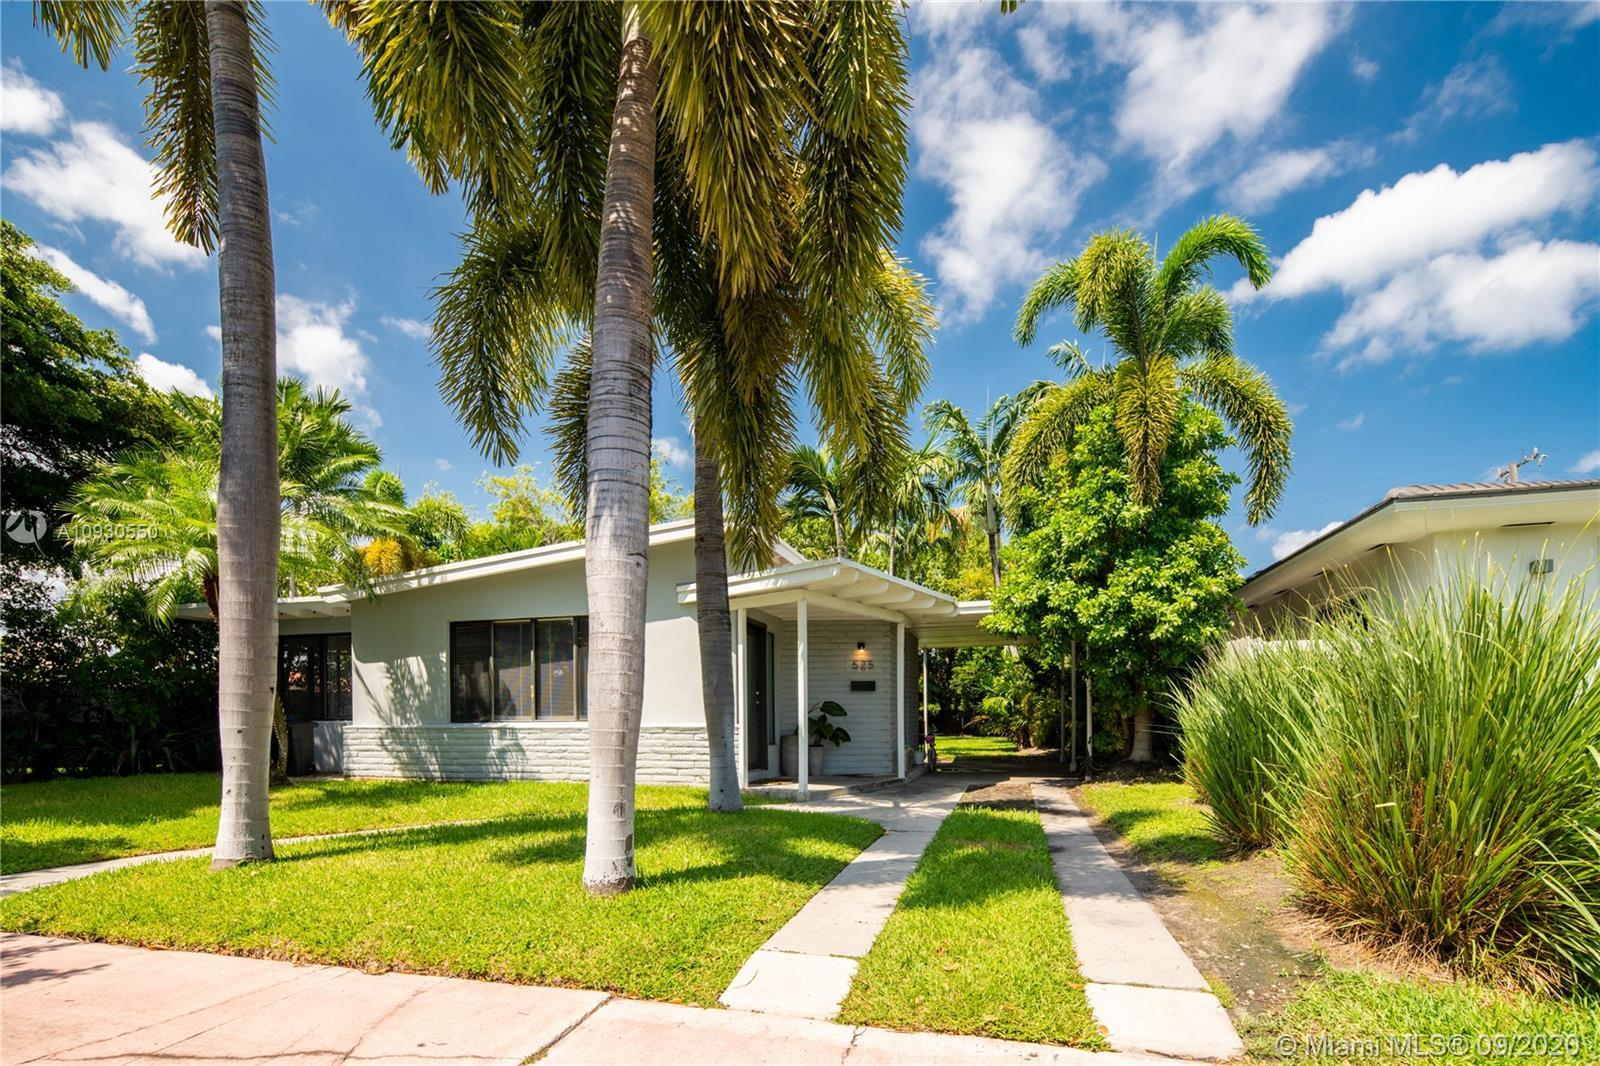 CHARMING MID CENTURY MODERN HOME LOCATED IN THE PRESTIGIOUS NORMANDY SHORES GOLF COMMUNITY. THE HOME